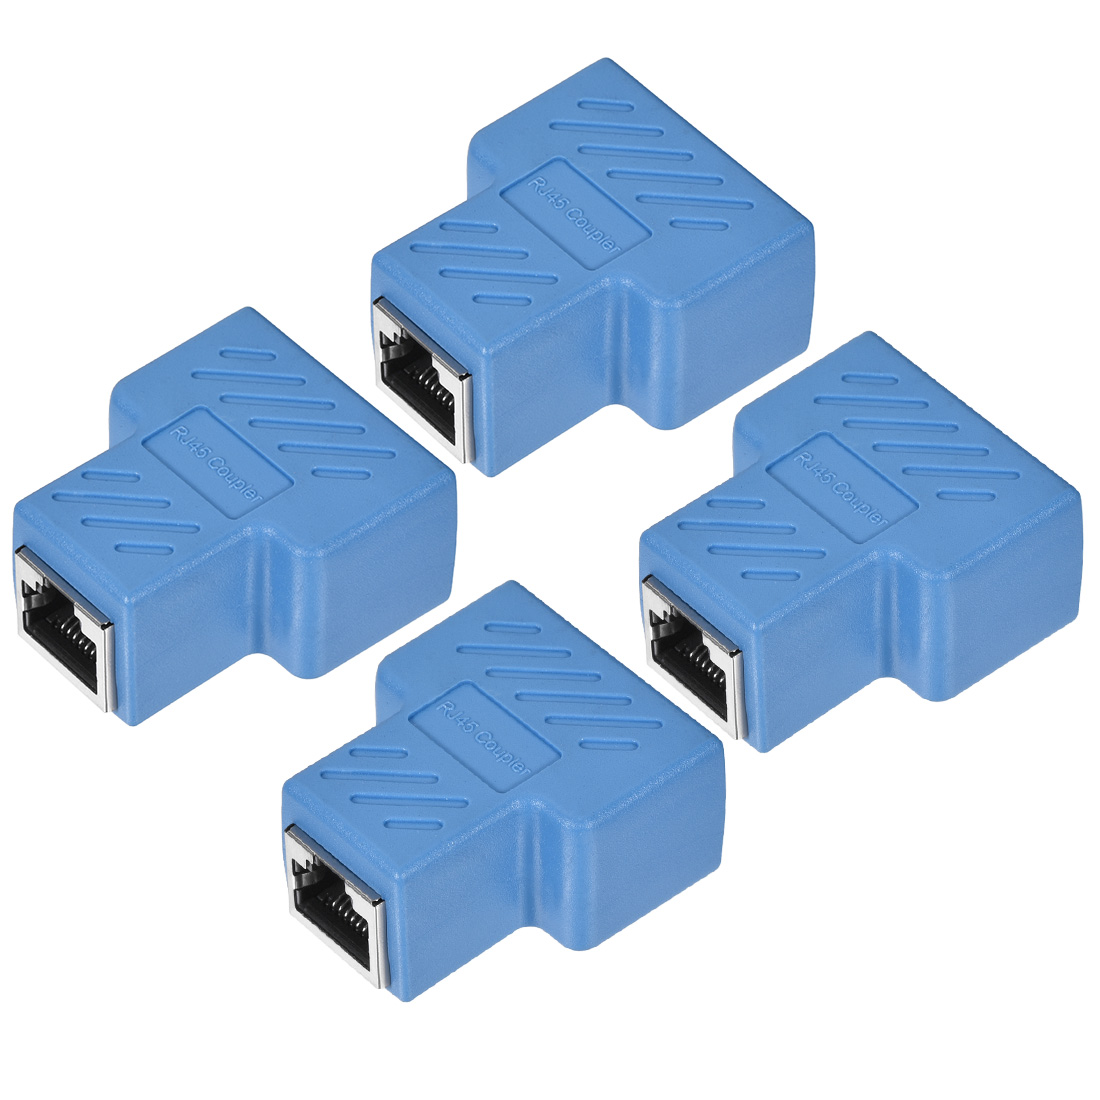 RJ45 Coupler Inline Connector Cat7 Cat6 Cat5e Cable 44x36x21mm Blue 4Pcs